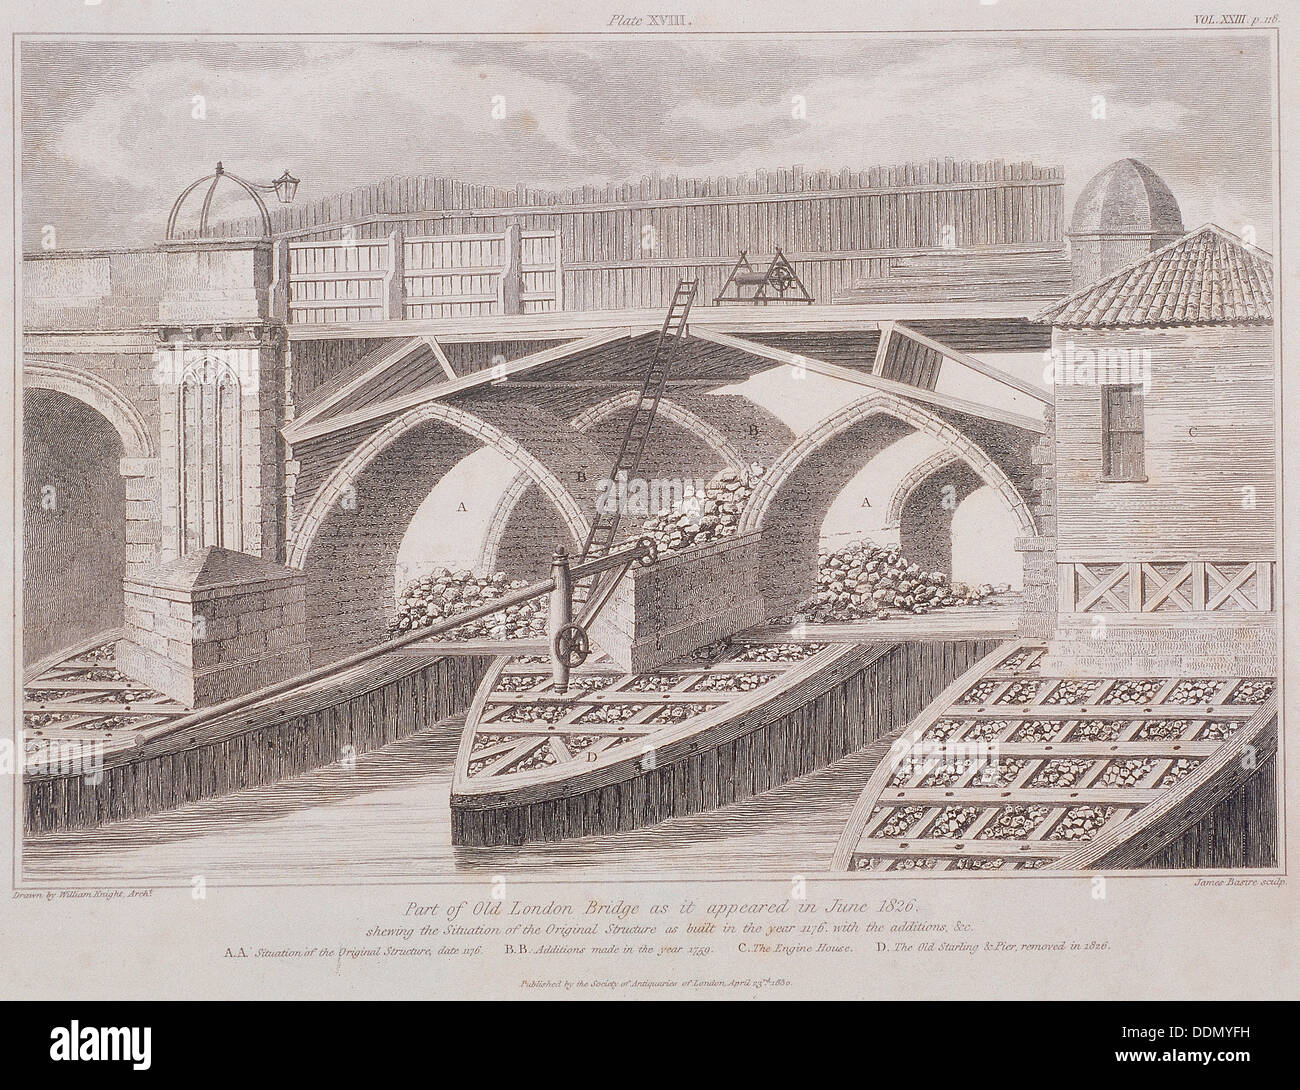 London bridge old london 1830 artist james basire i for Design agency london bridge